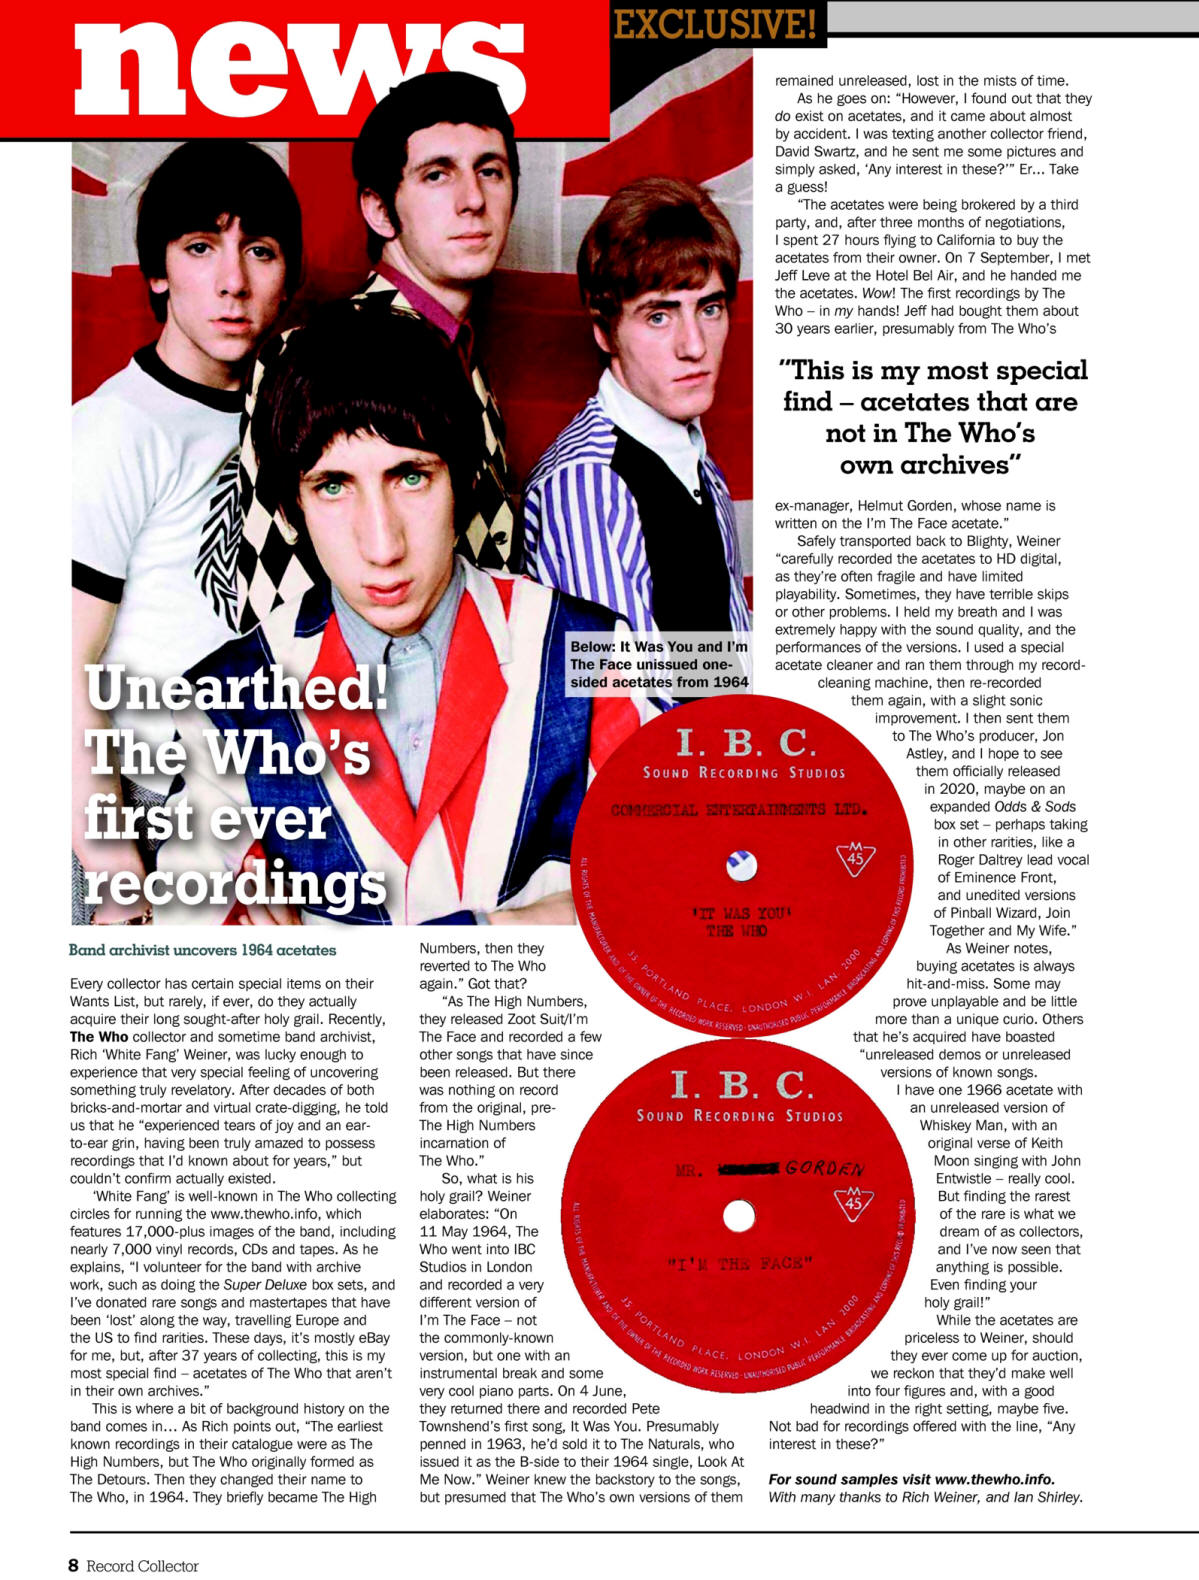 The Who - Record Collector Magazine - December, 2019